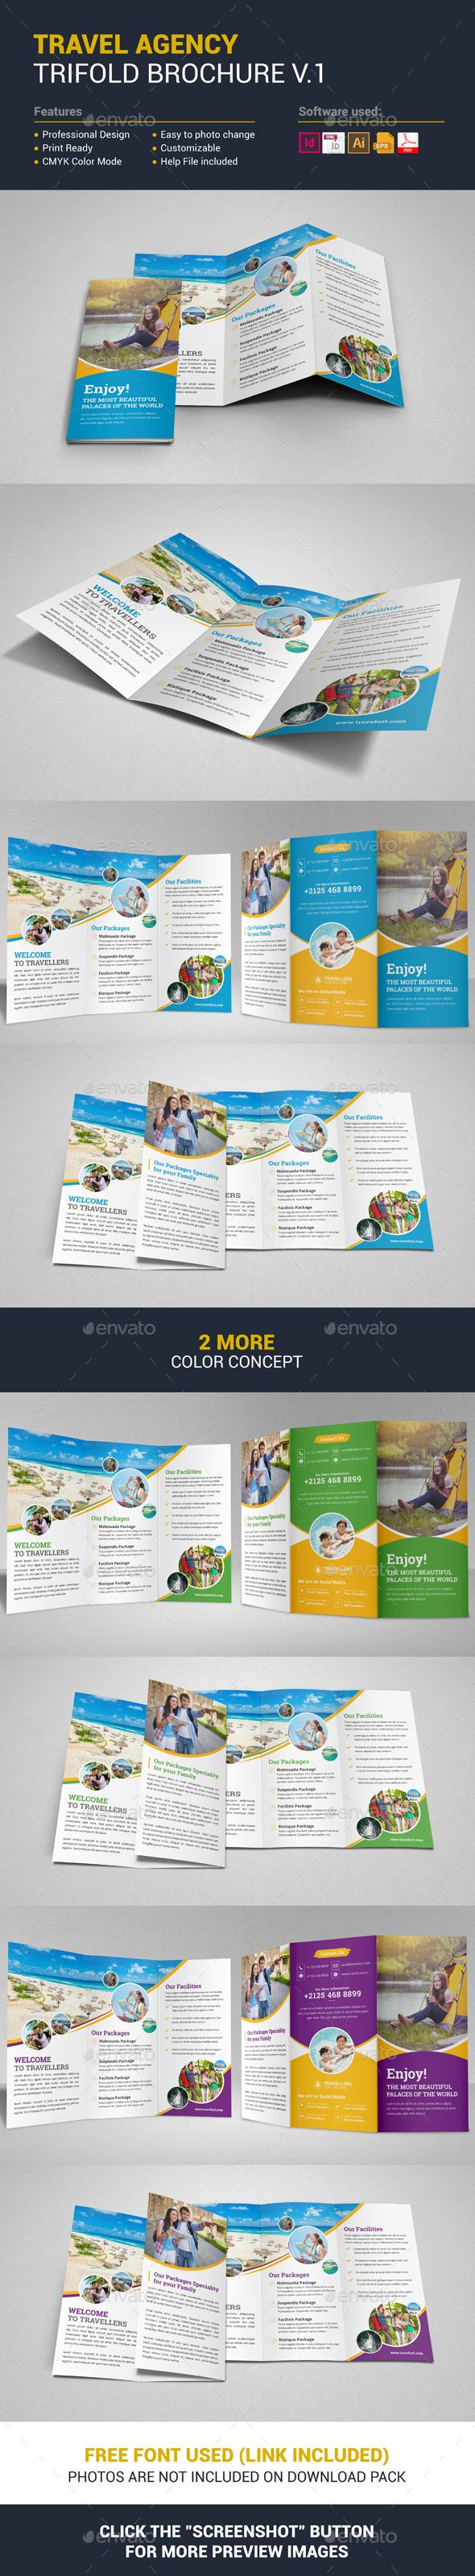 Travel Agency Trifold Brochure  — EPS Template #business trifold #print ready • Download ➝ https://graphicriver.net/item/travel-agency-trifold-brochure/17973770?ref=pxcr